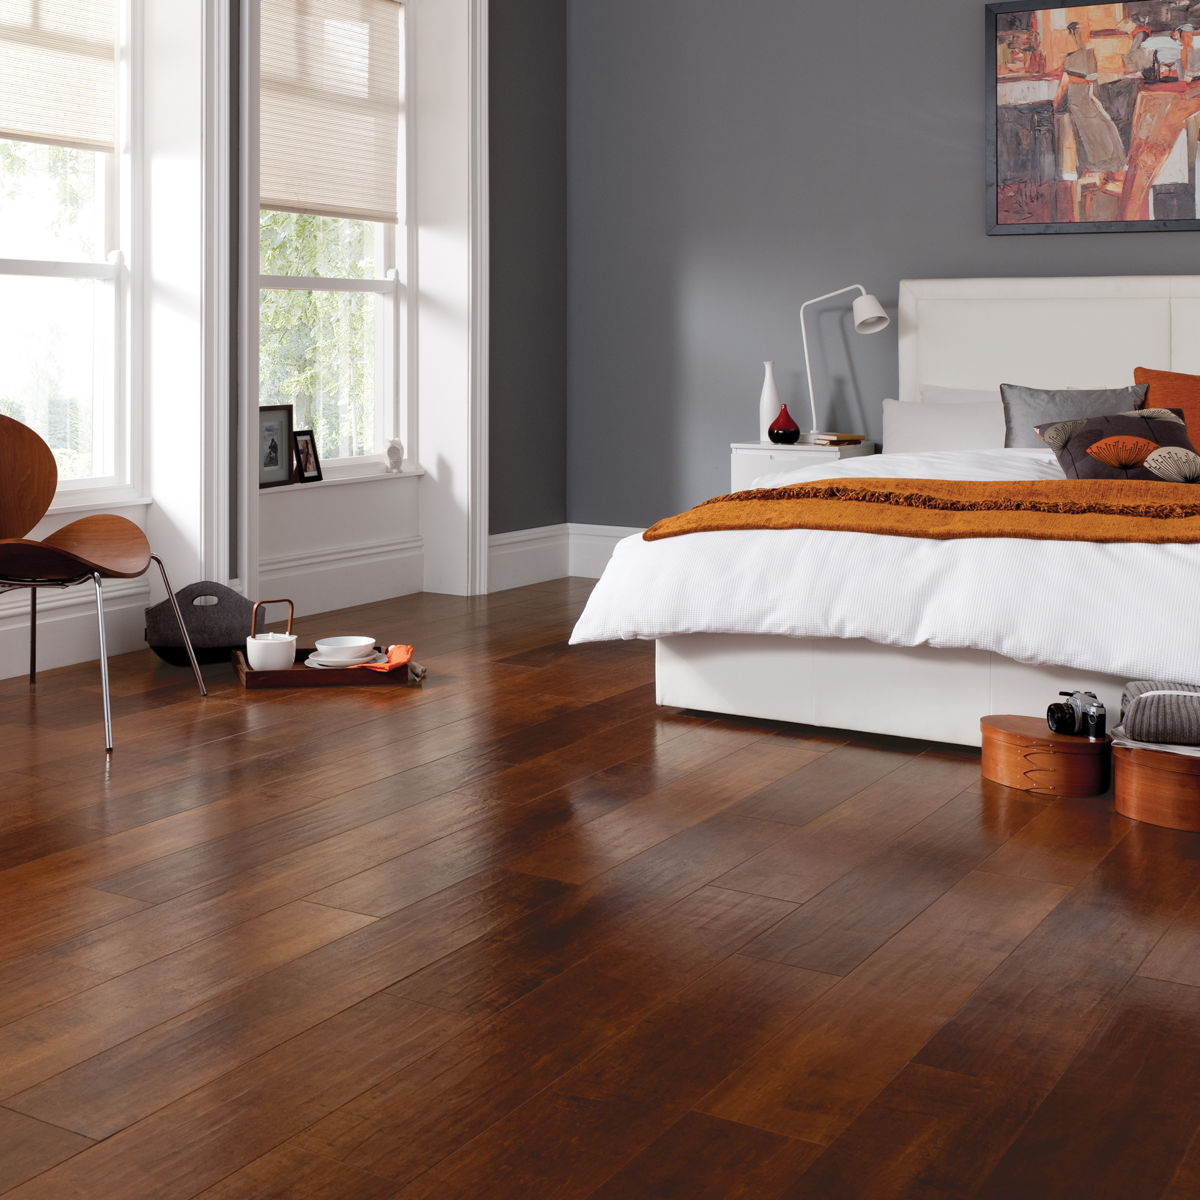 Terracotta Bedroom Designs: Karndean Art Select Santina Cherry RL07 Vinyl Flooring